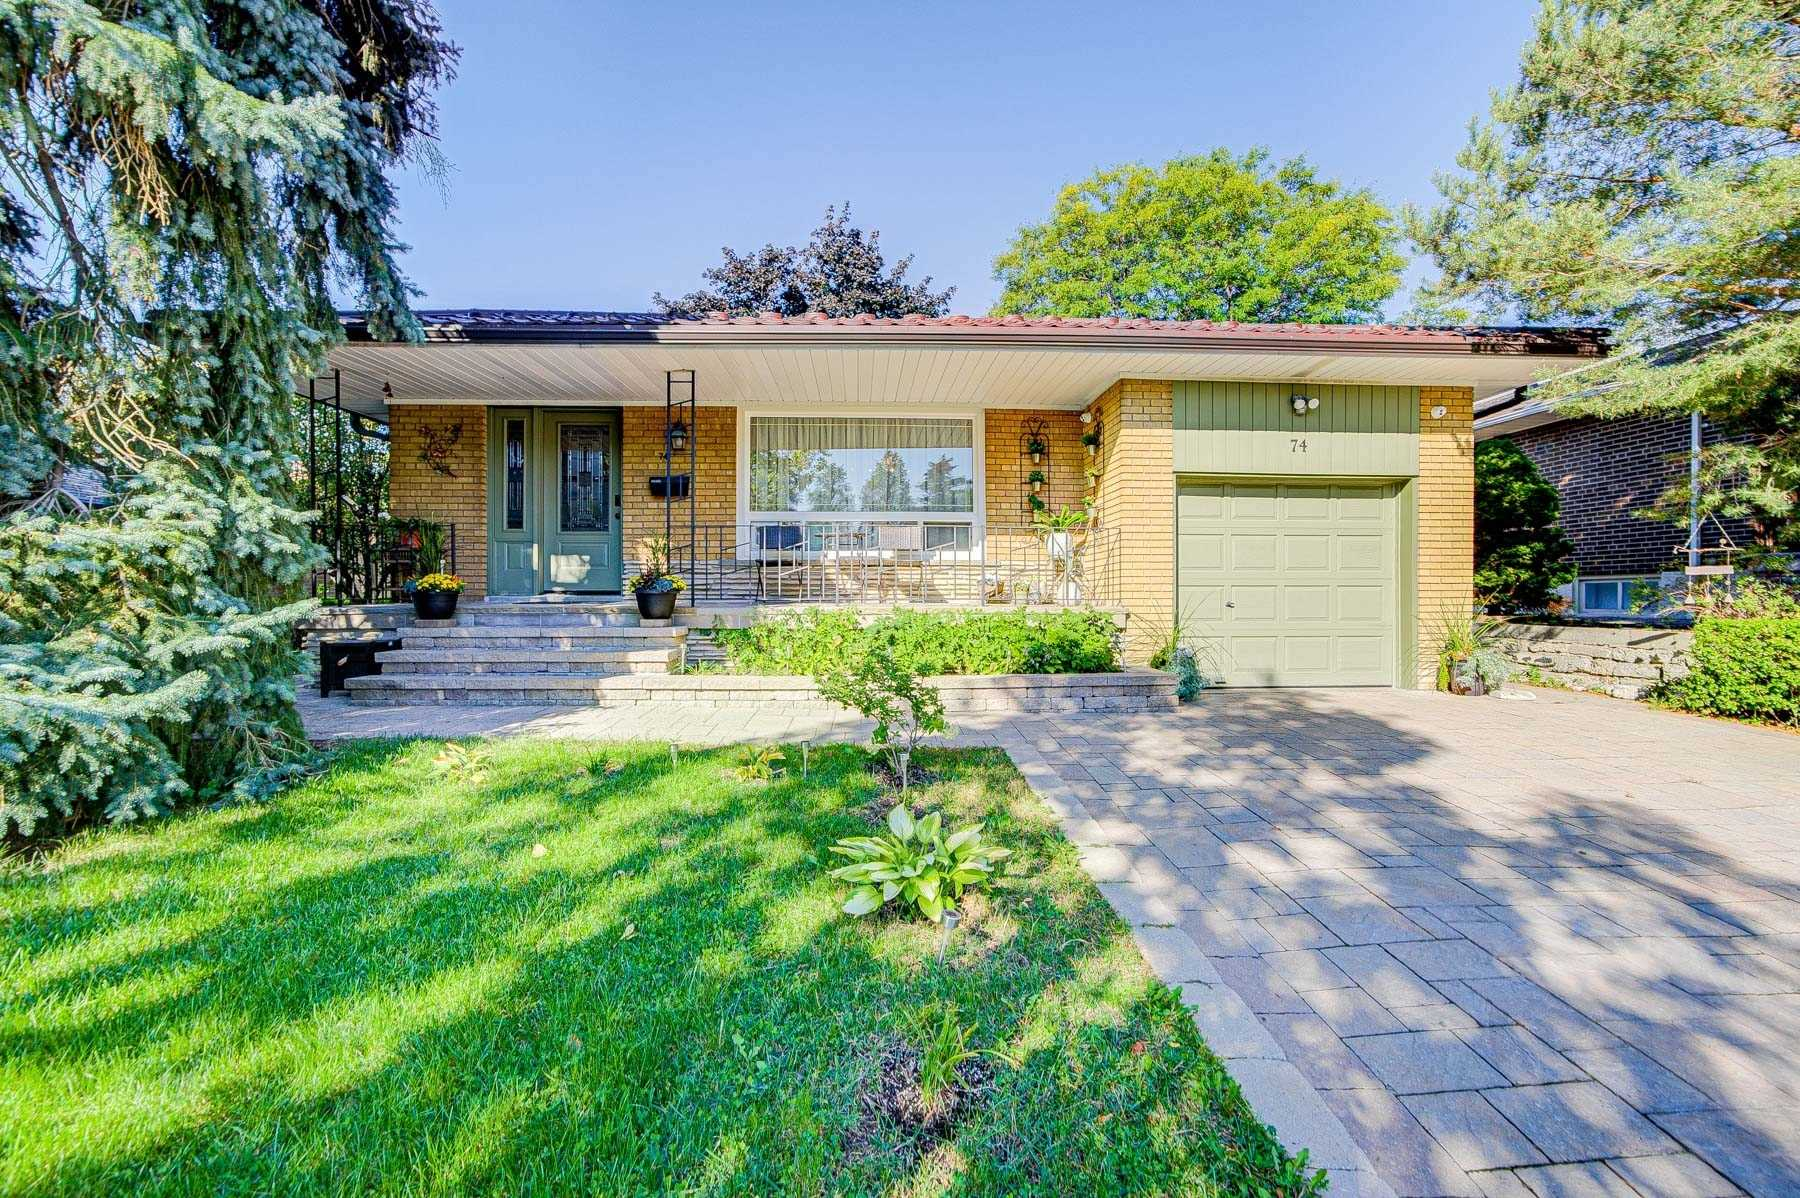 Detached house For Sale In Toronto - 74 Clansman Blvd, Toronto, Ontario, Canada M2H1X8 , 3 Bedrooms Bedrooms, ,2 BathroomsBathrooms,Detached,For Sale,Clansman